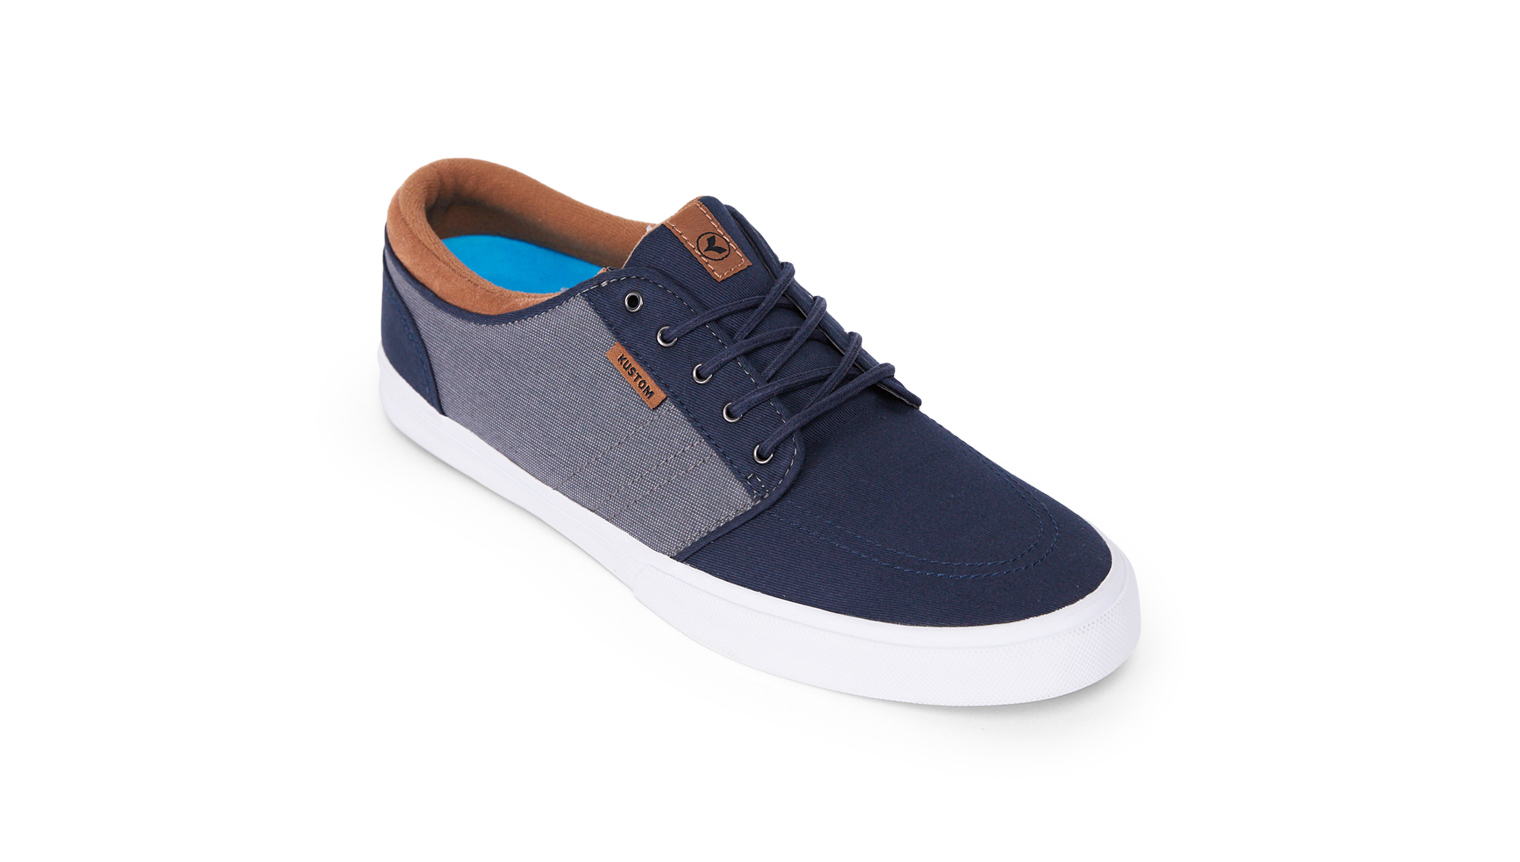 KUSTOM SHOES REMARK SHOE / NAVY GREY TAN